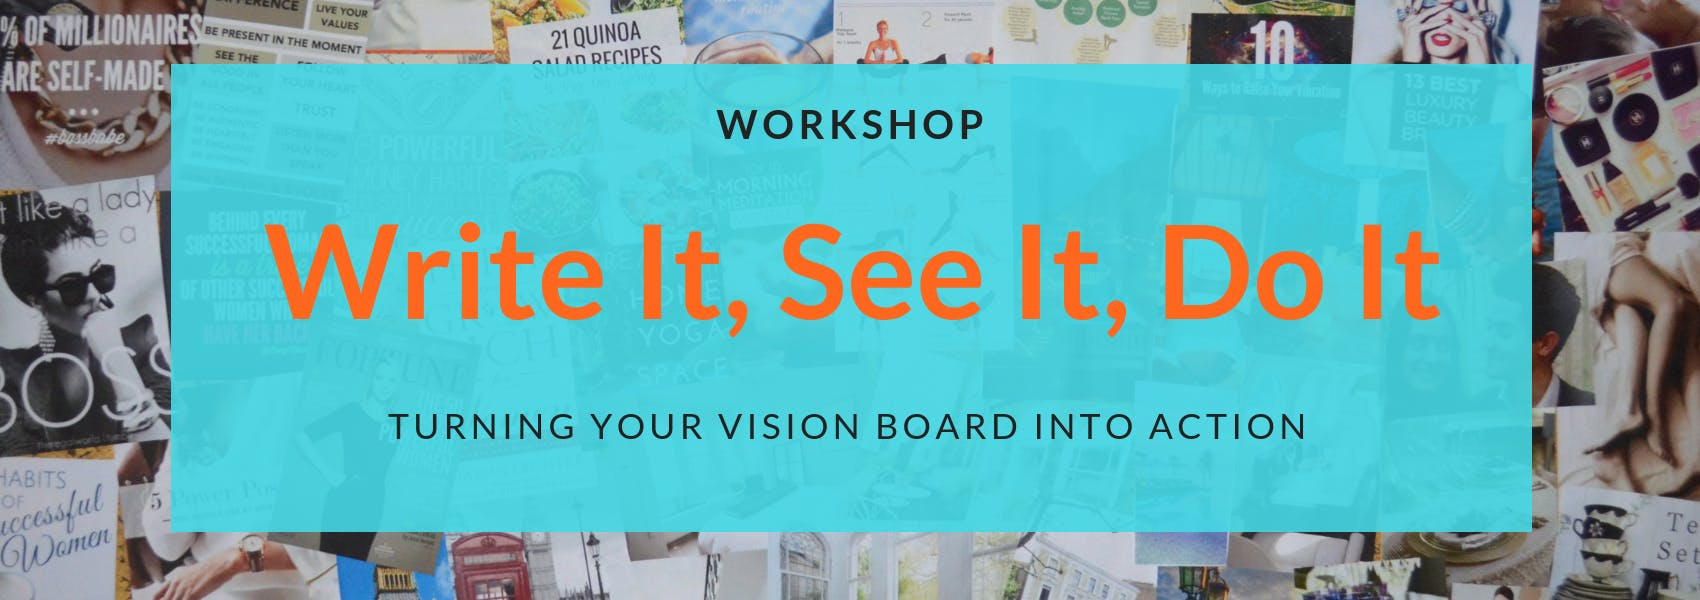 Workshop: Write It, See It, Do It - Turning your vision into action